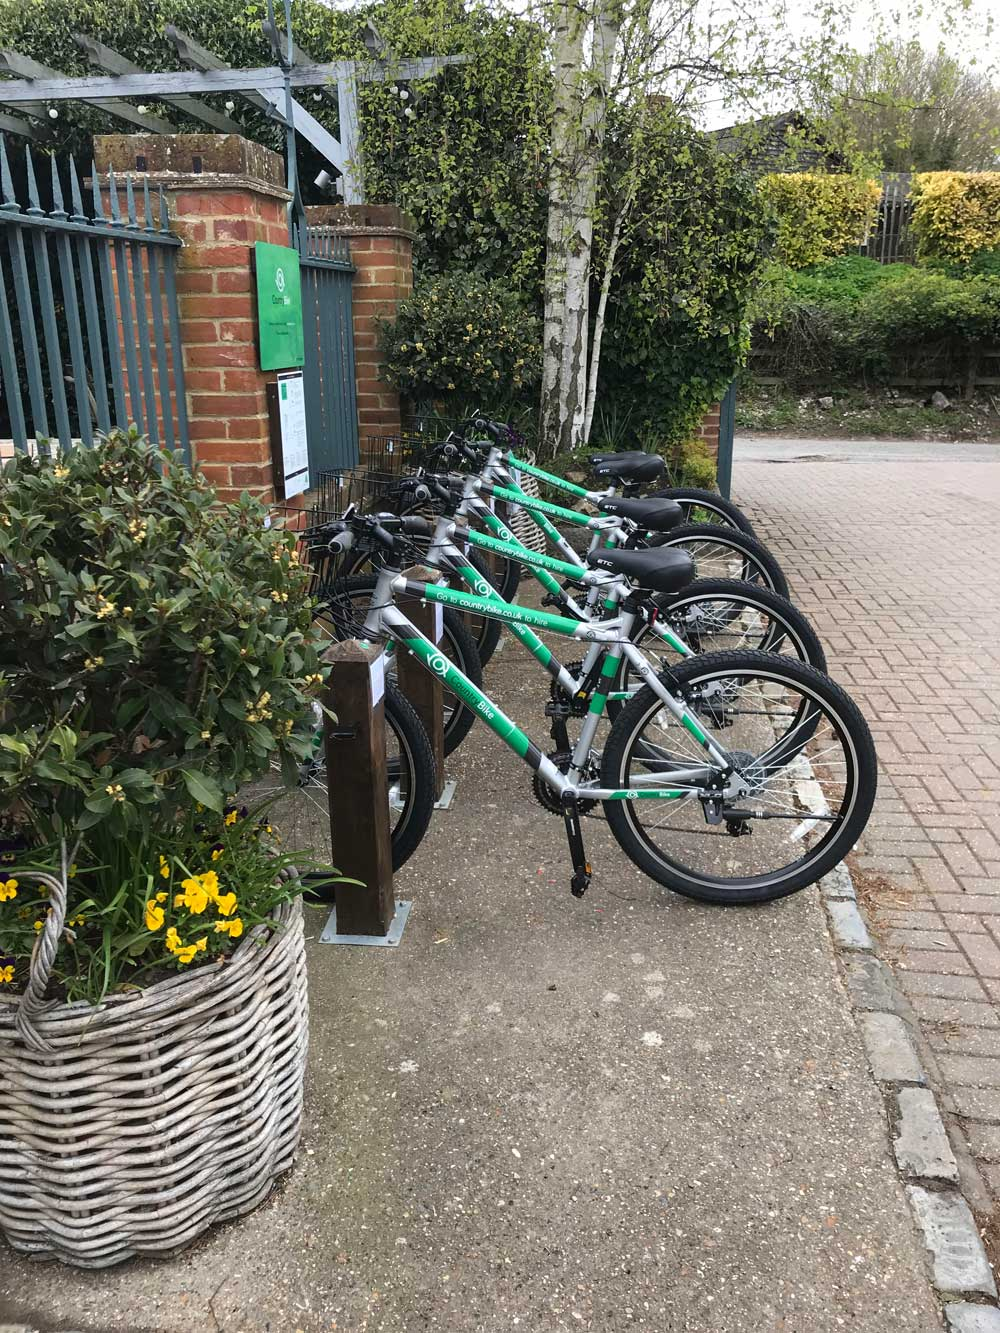 Image of bikes at The Dirty Habit